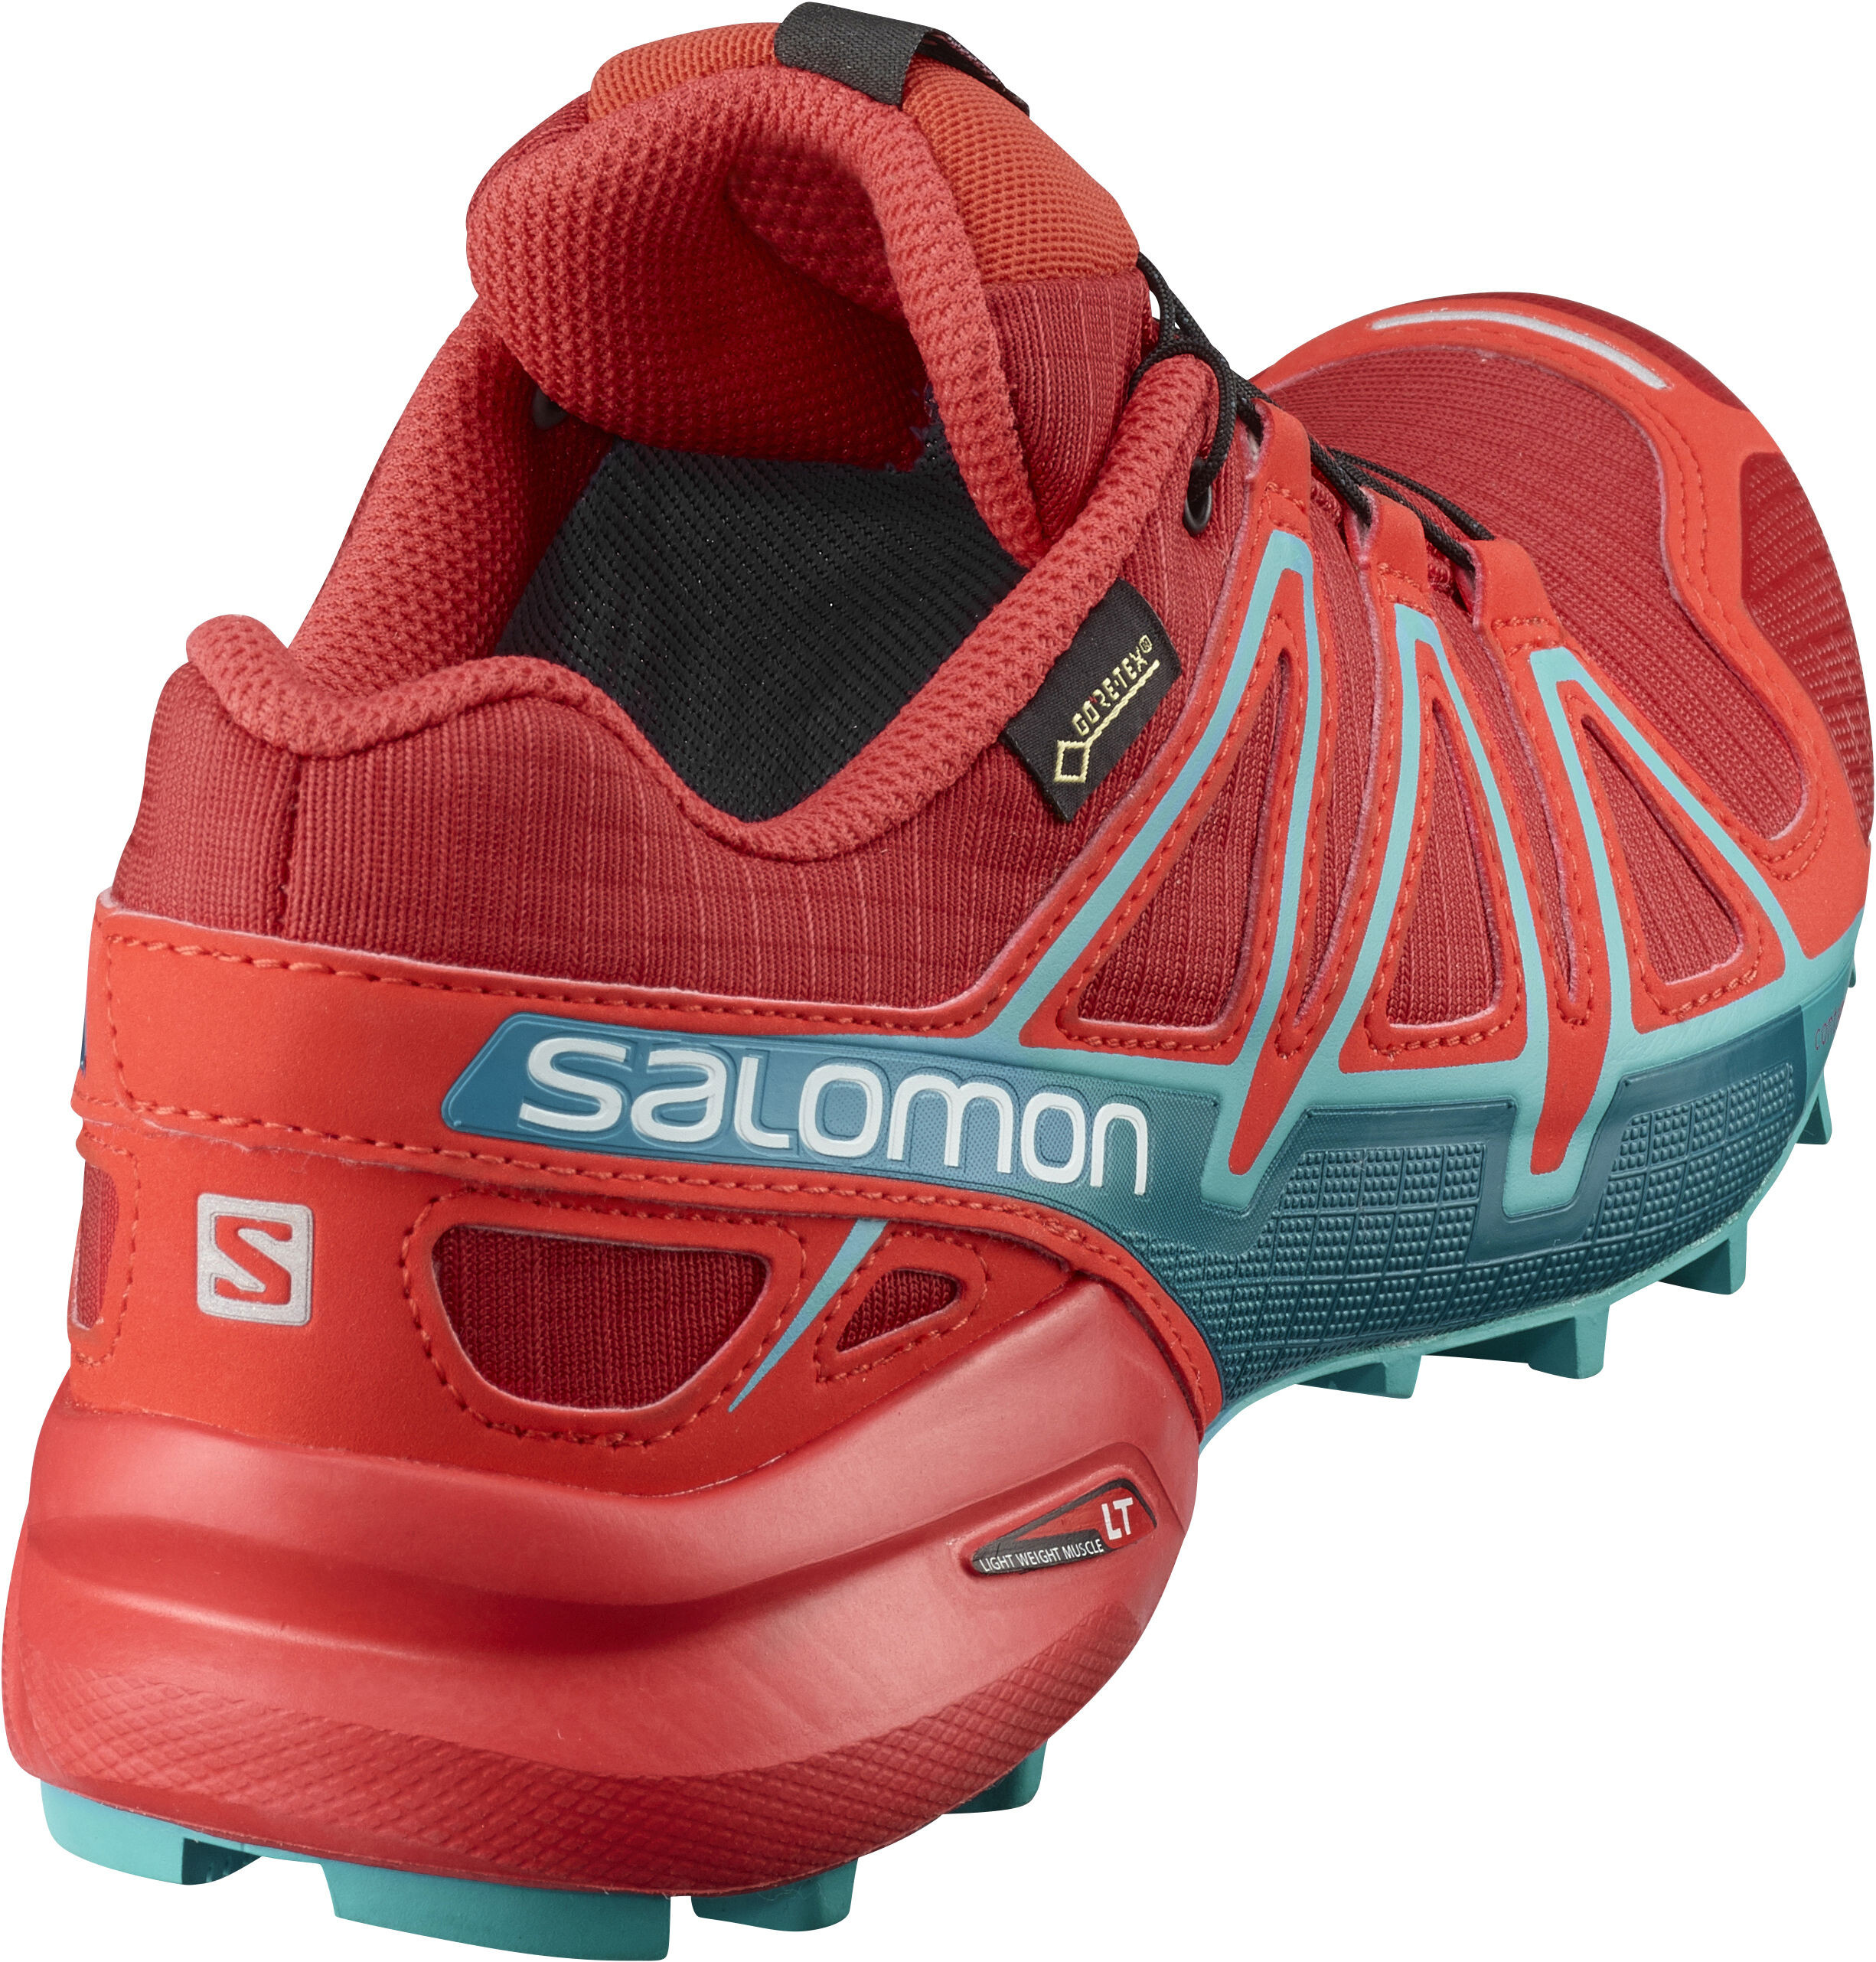 sports shoes 91657 a0652 Salomon Speedcross 4 GTX - Chaussures running Femme - rouge turquoise